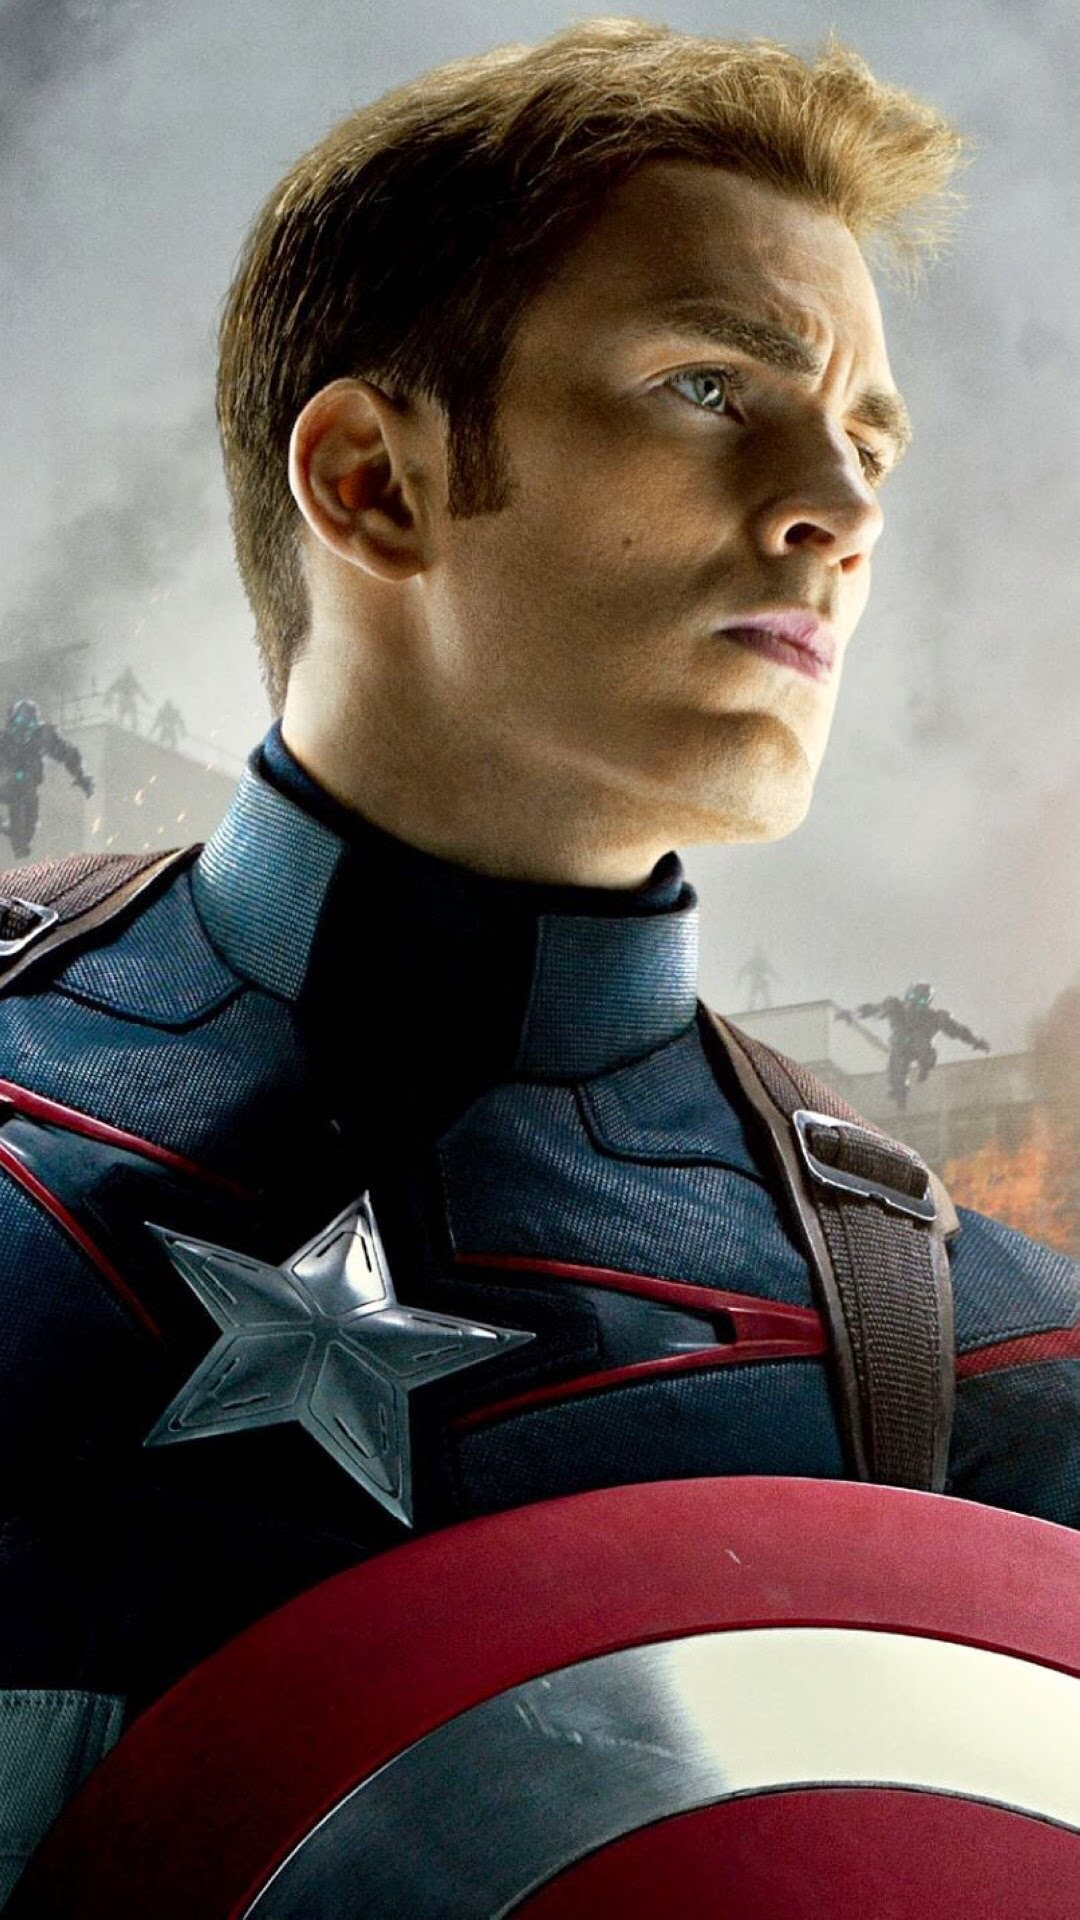 Captain-America-Tap-to-see-Avengers-Age-of-Ultron-Apple-iPhone-HD-Collection-avenge-wallpaper-wpc5803217